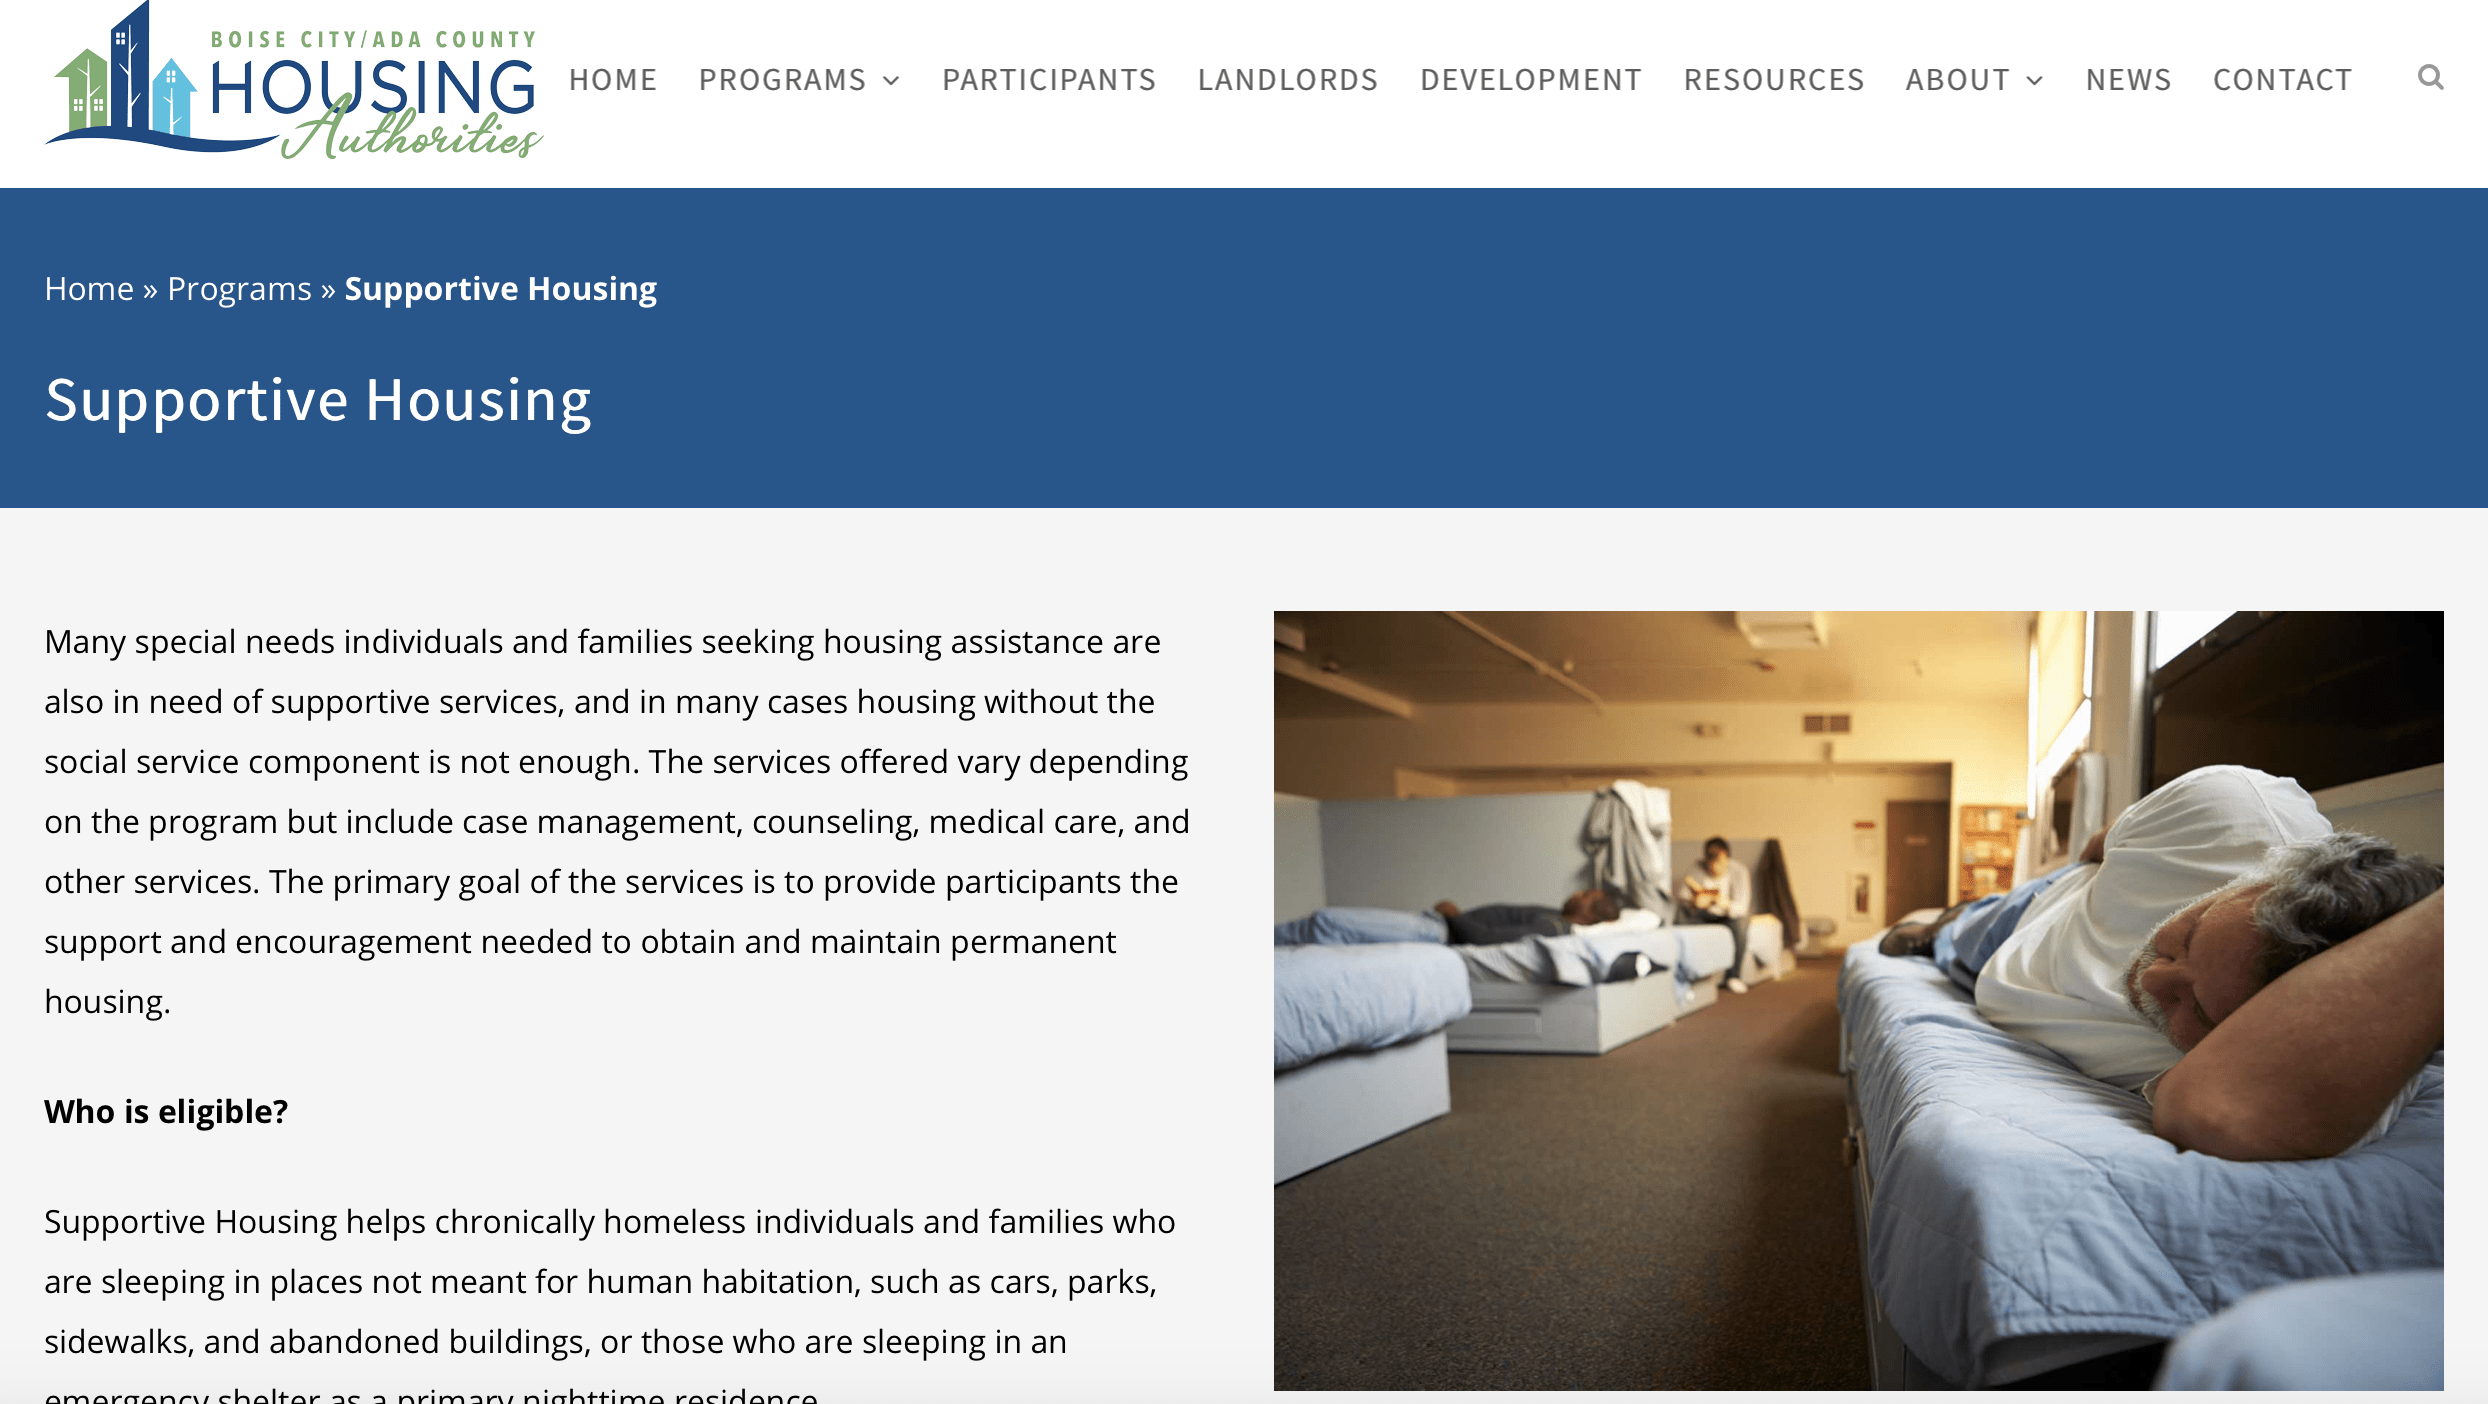 BCACHA Launches New Website | Boise City/Ada County Housing